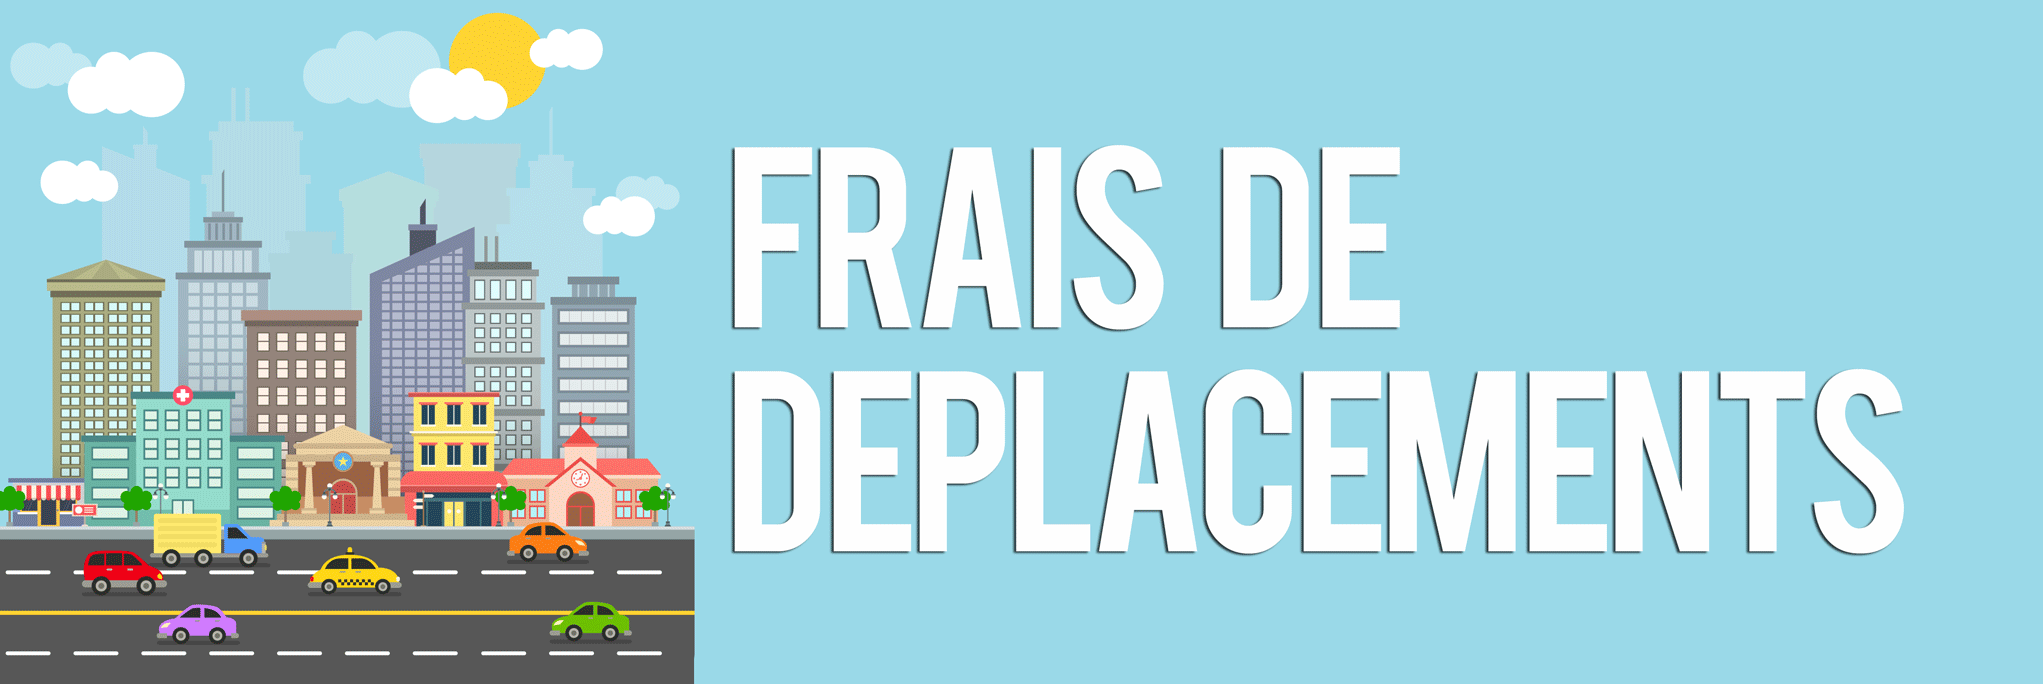 legislationfraisdedeplacements